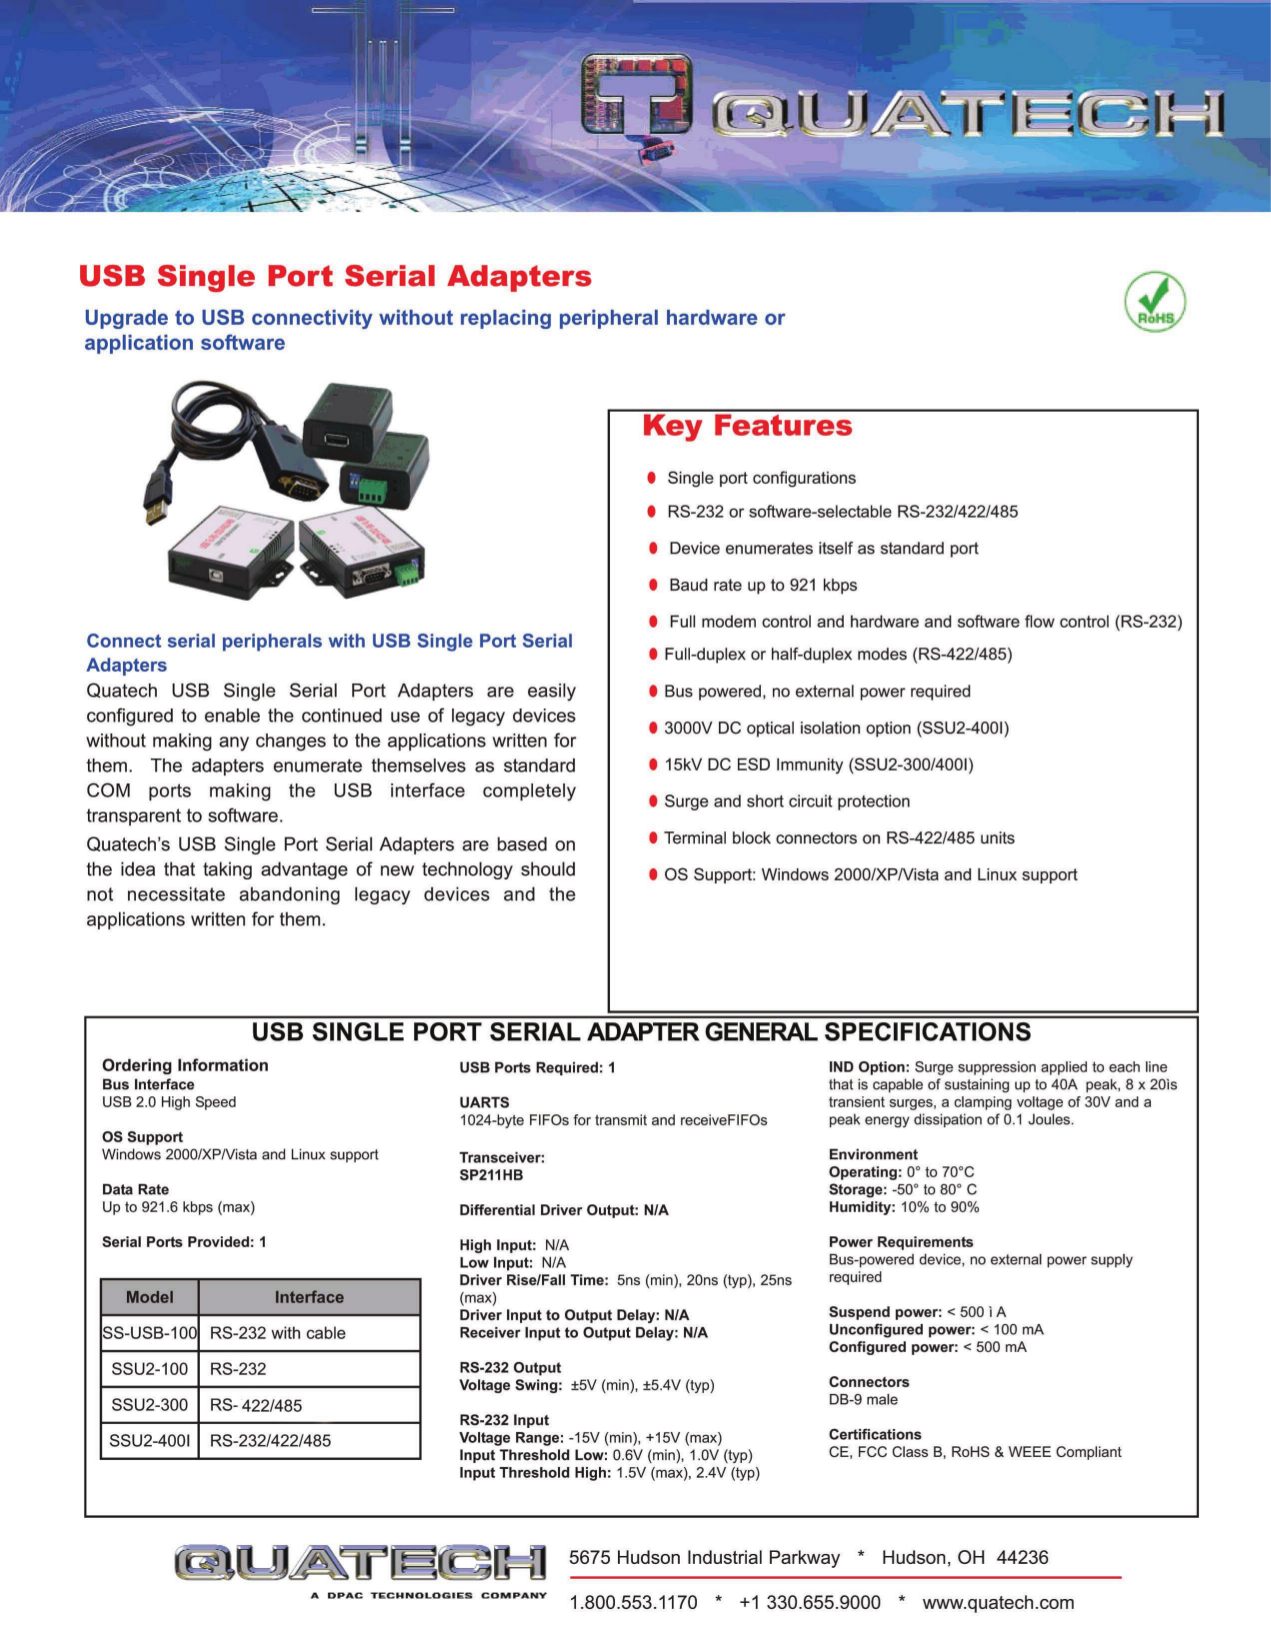 pdf for Quatech Other SSU2-300 Adapters manual